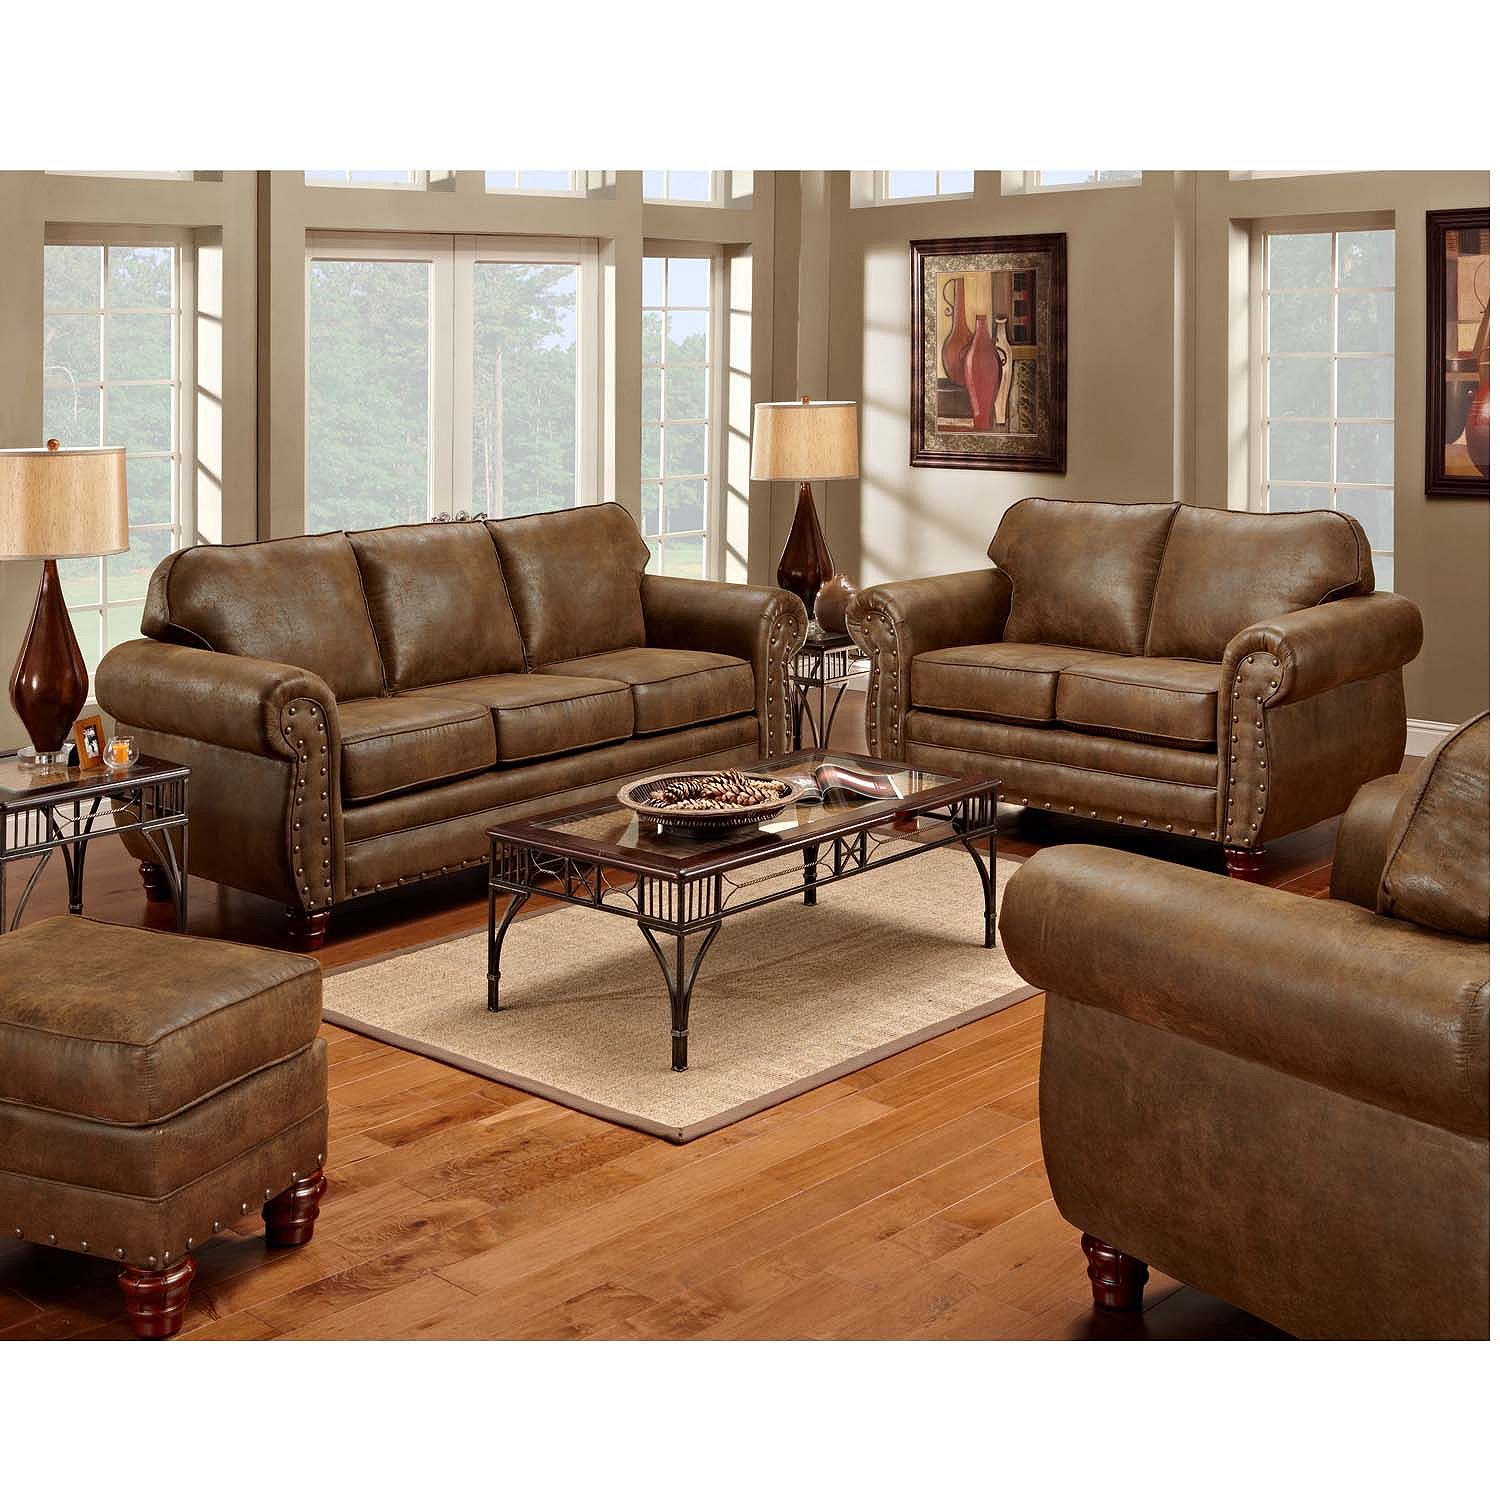 big living room chairs top 4 comfortable chairs for living room homesfeed 13464